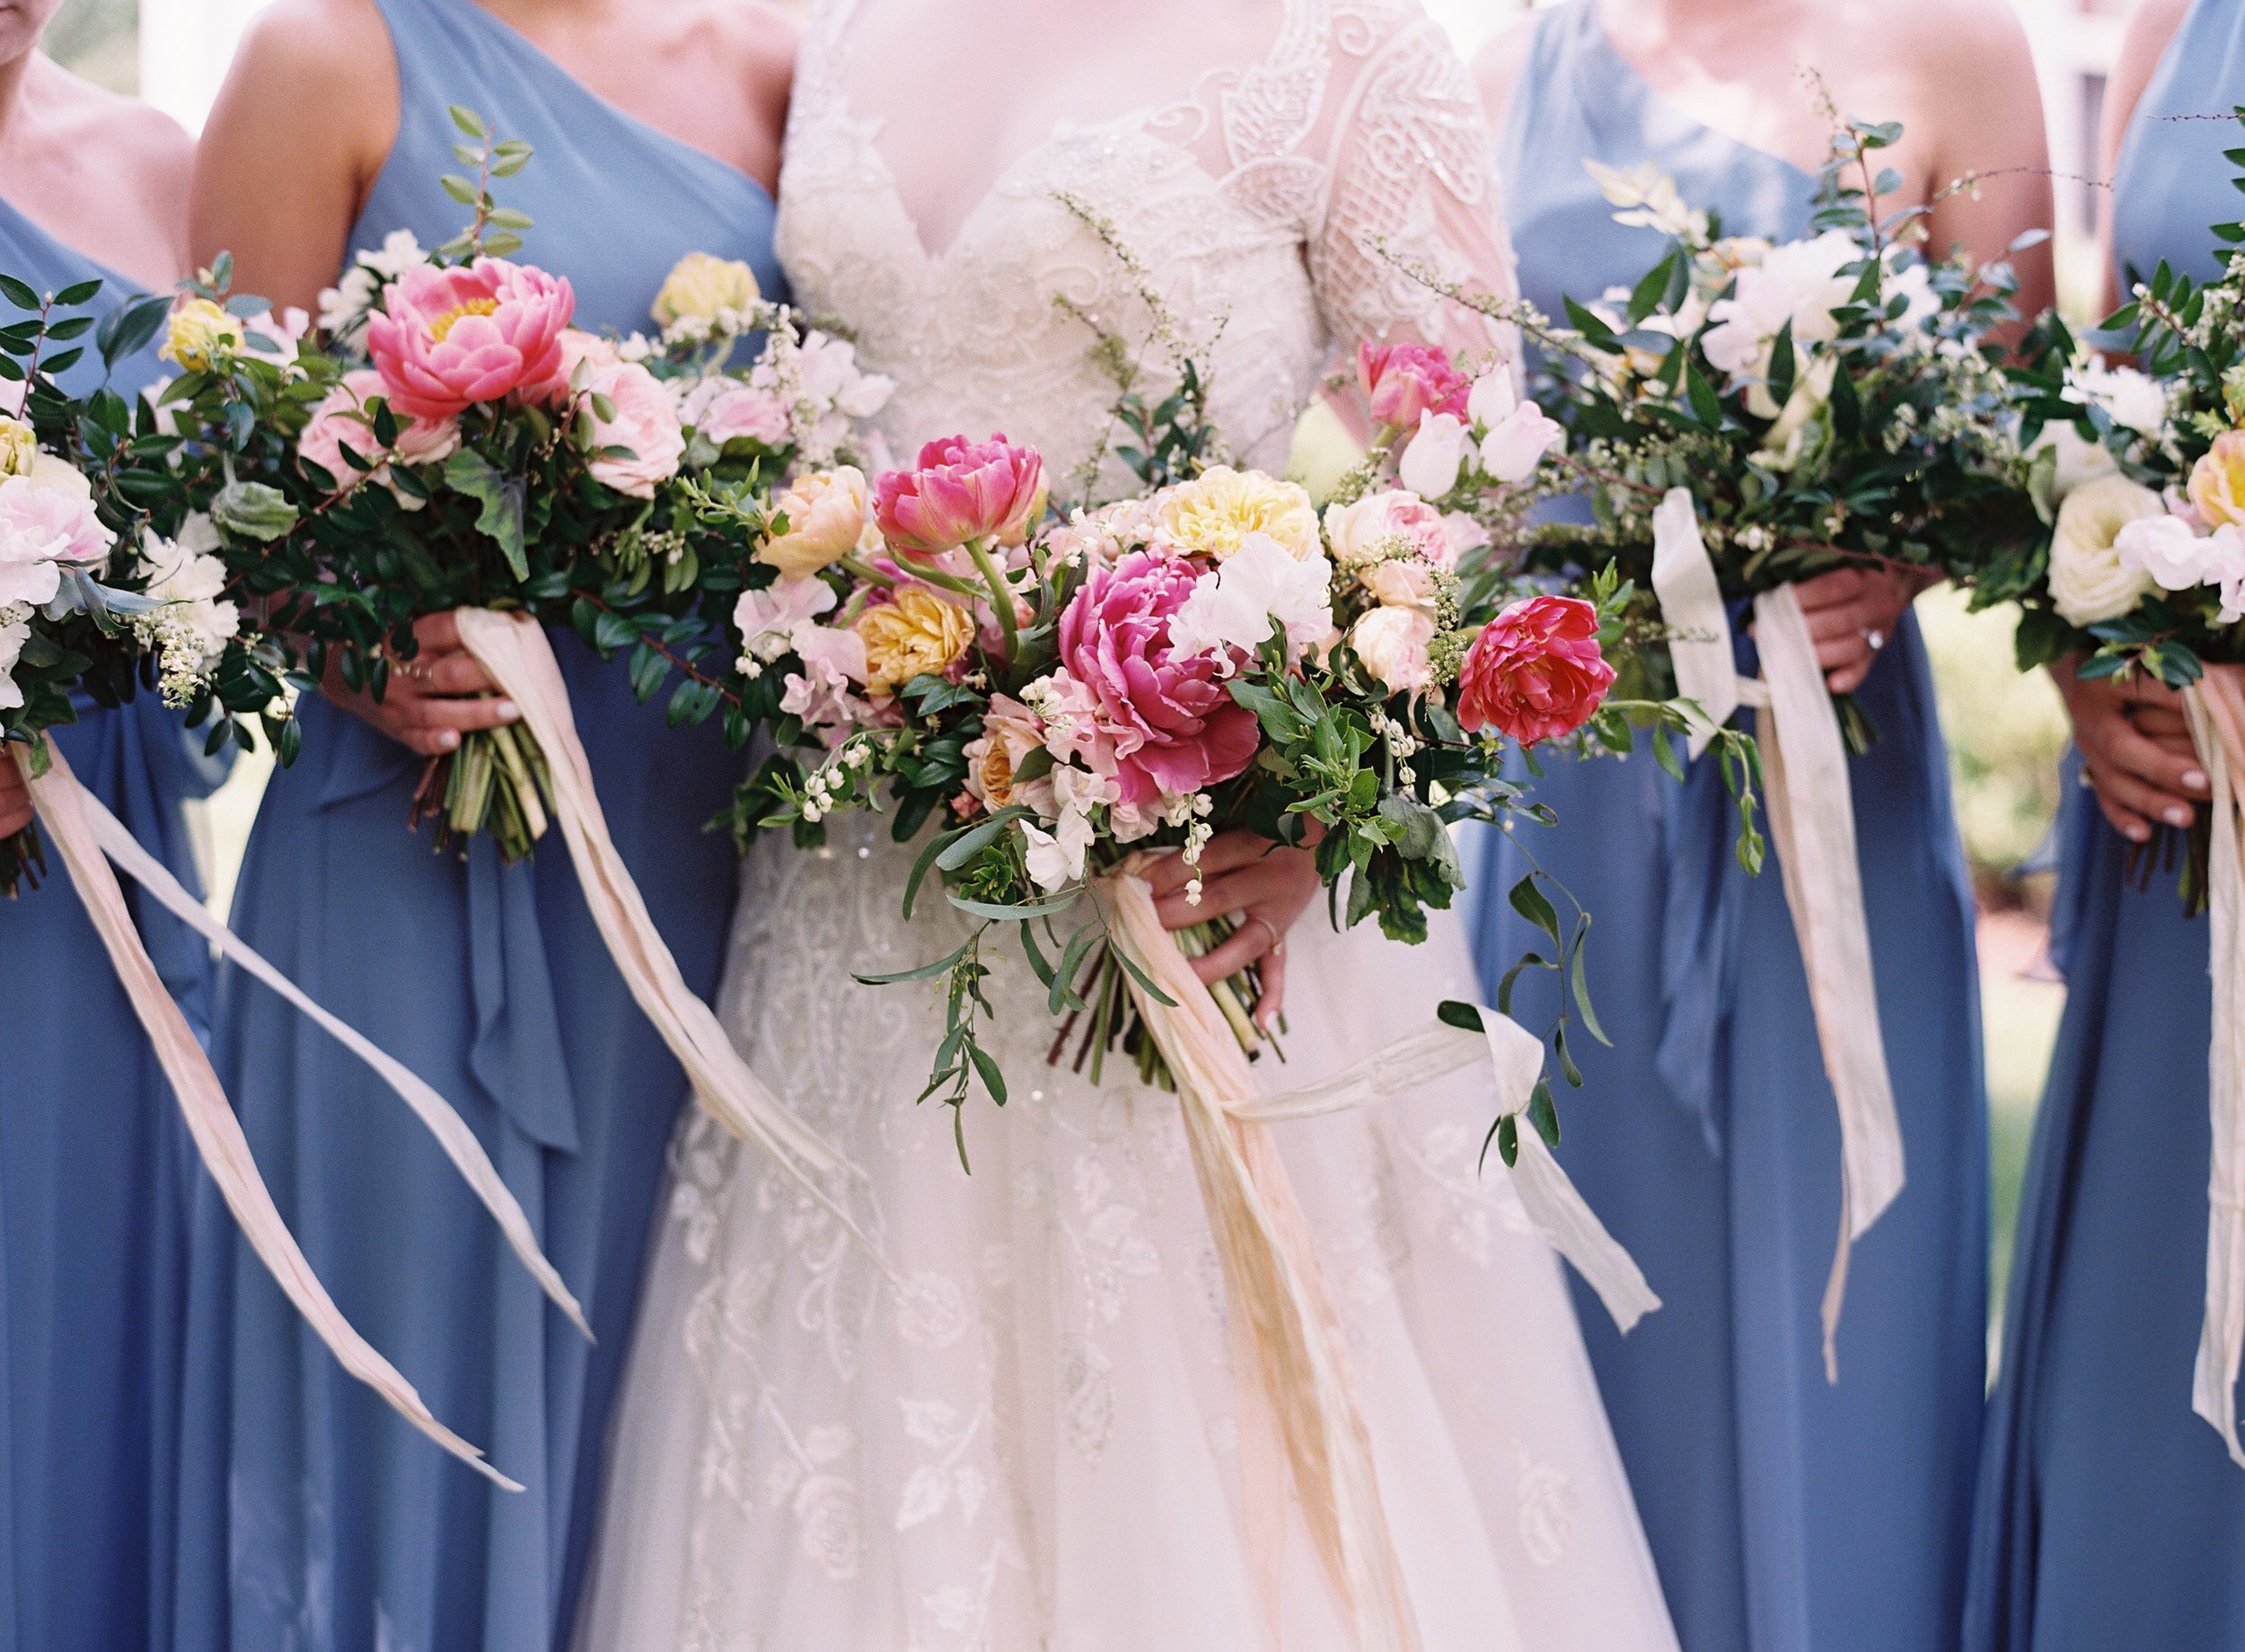 Lush bridal bouquet of peonies, tulips, lily of the valley, garden roses, and sweet peas with streaming silk ribbon // Nashville Wedding Floral Design